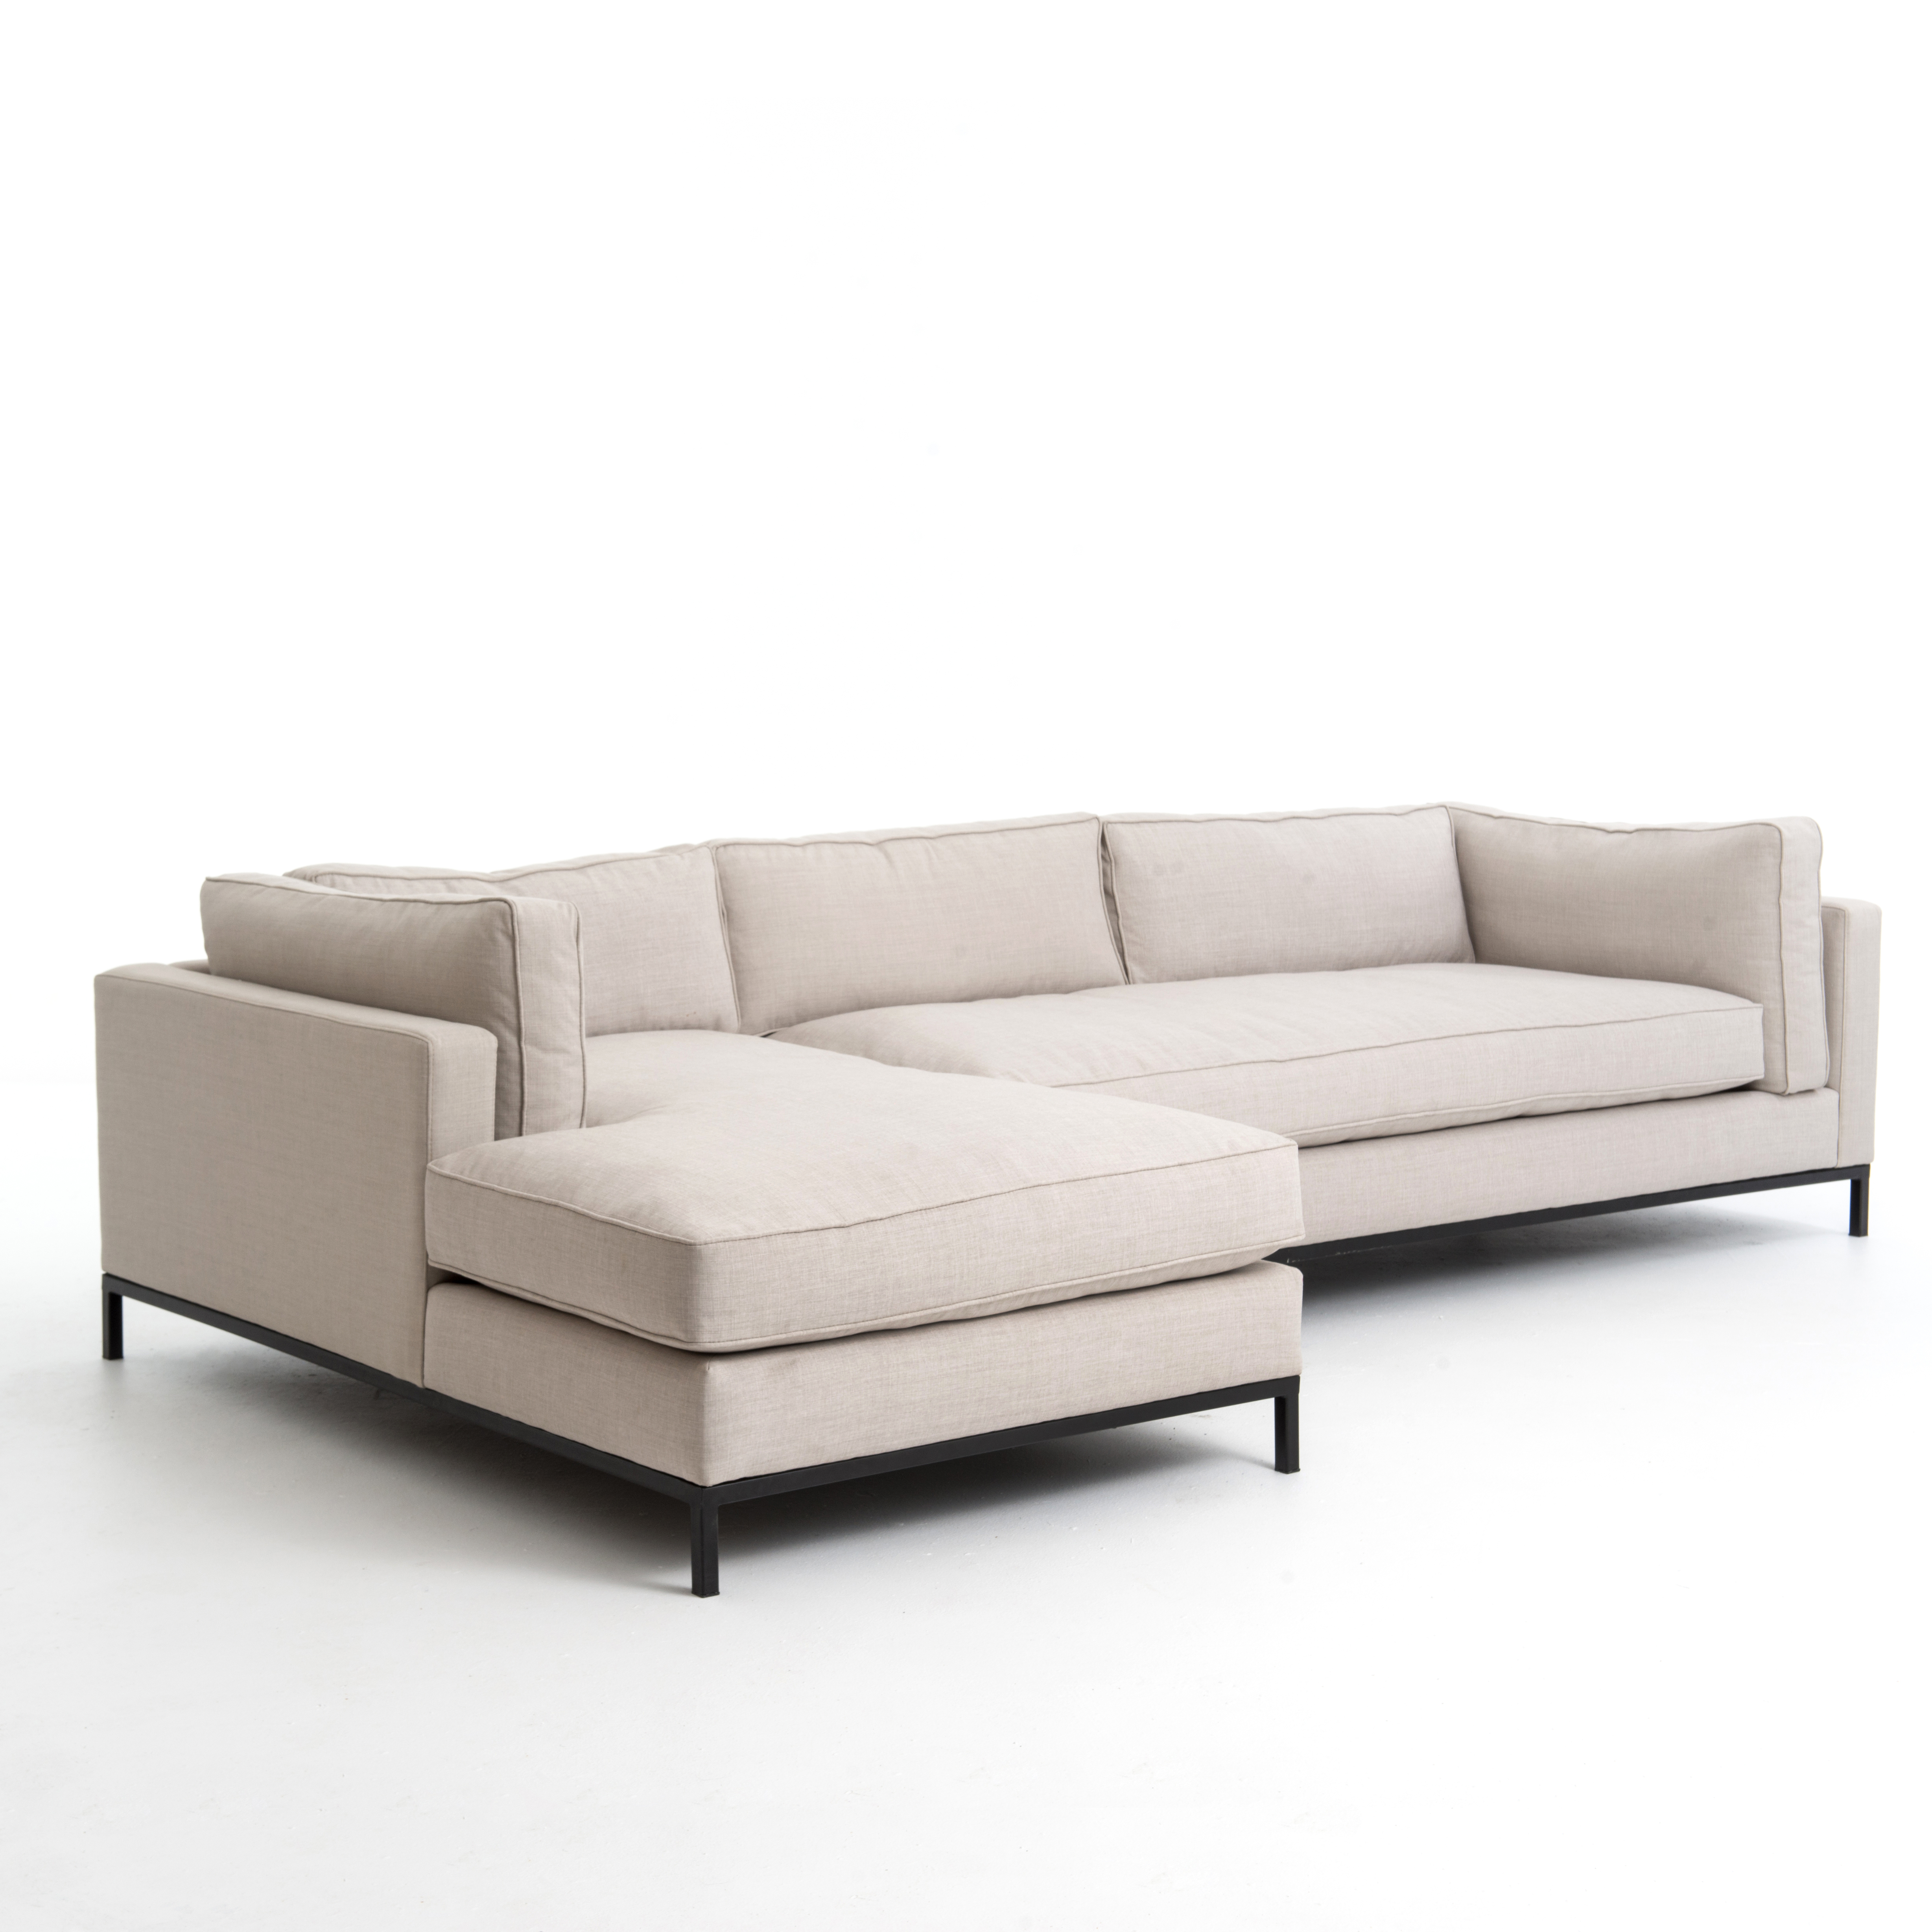 Newest Right Arm Chaise Sectional – Grammercy Sectional – Piece + Palette Throughout Evan 2 Piece Sectionals With Raf Chaise (Gallery 11 of 20)